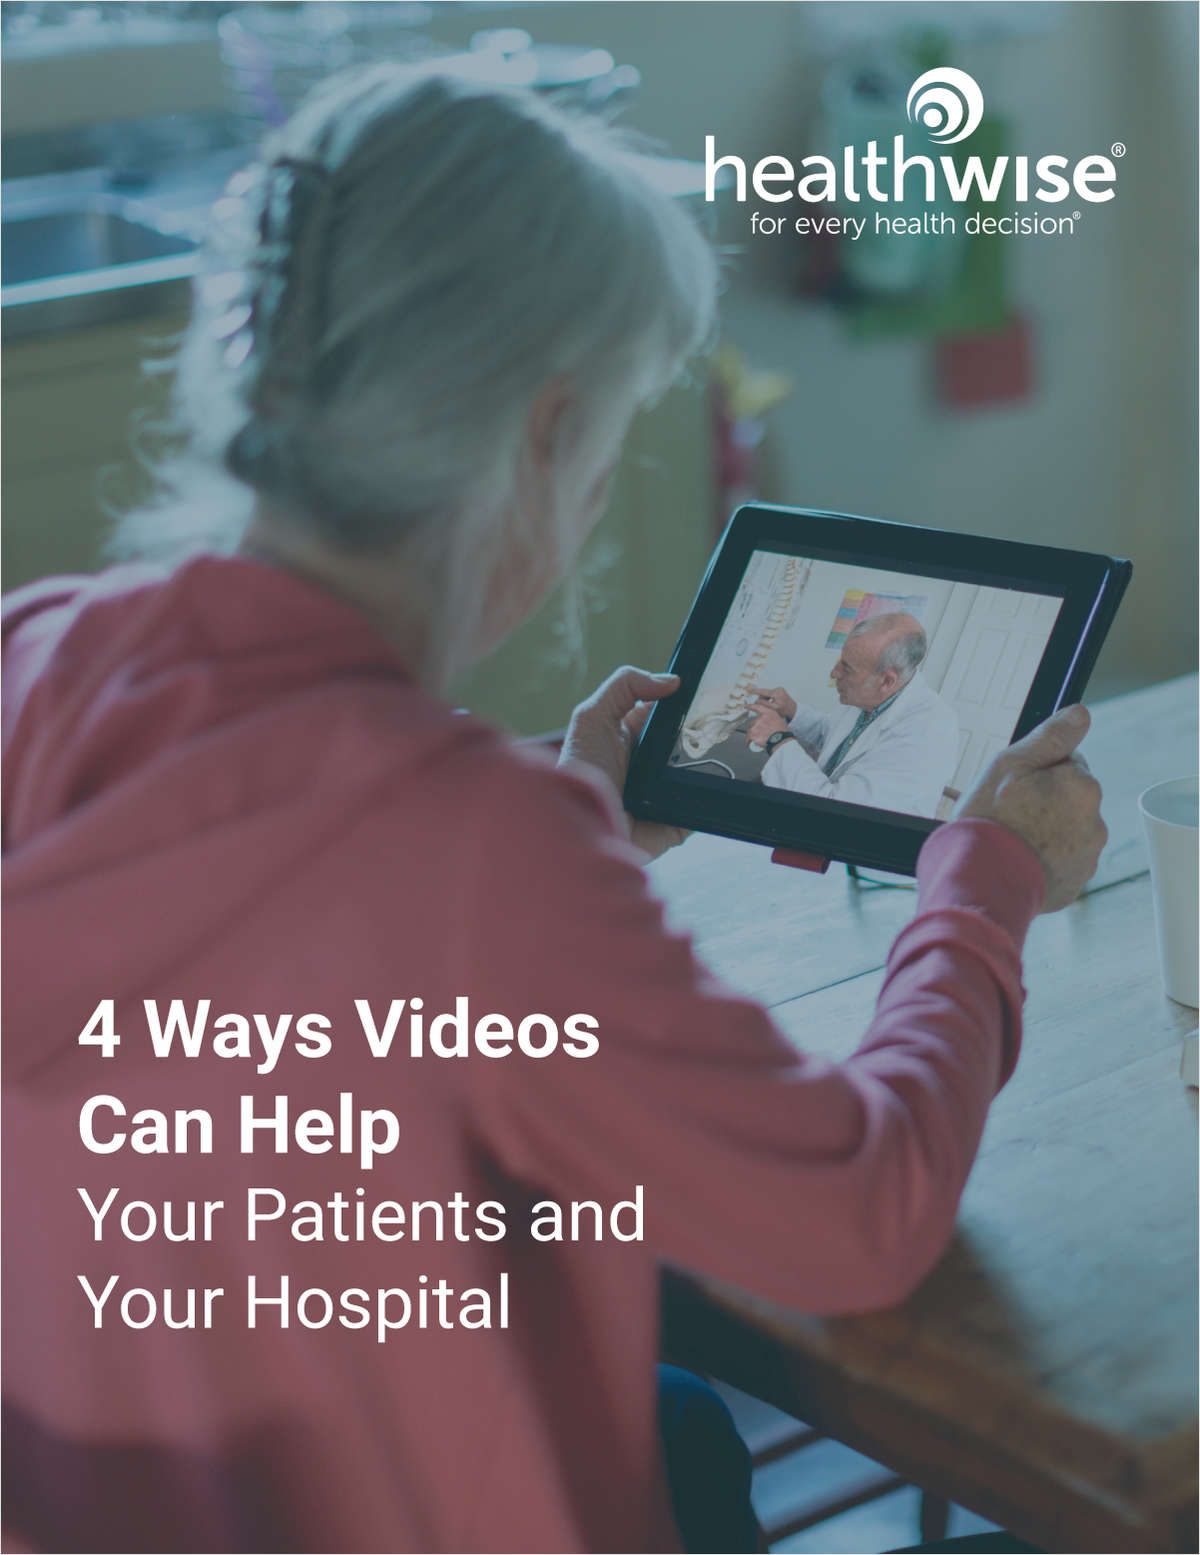 4 Ways Videos Can Help Your Patients and Your Hospital